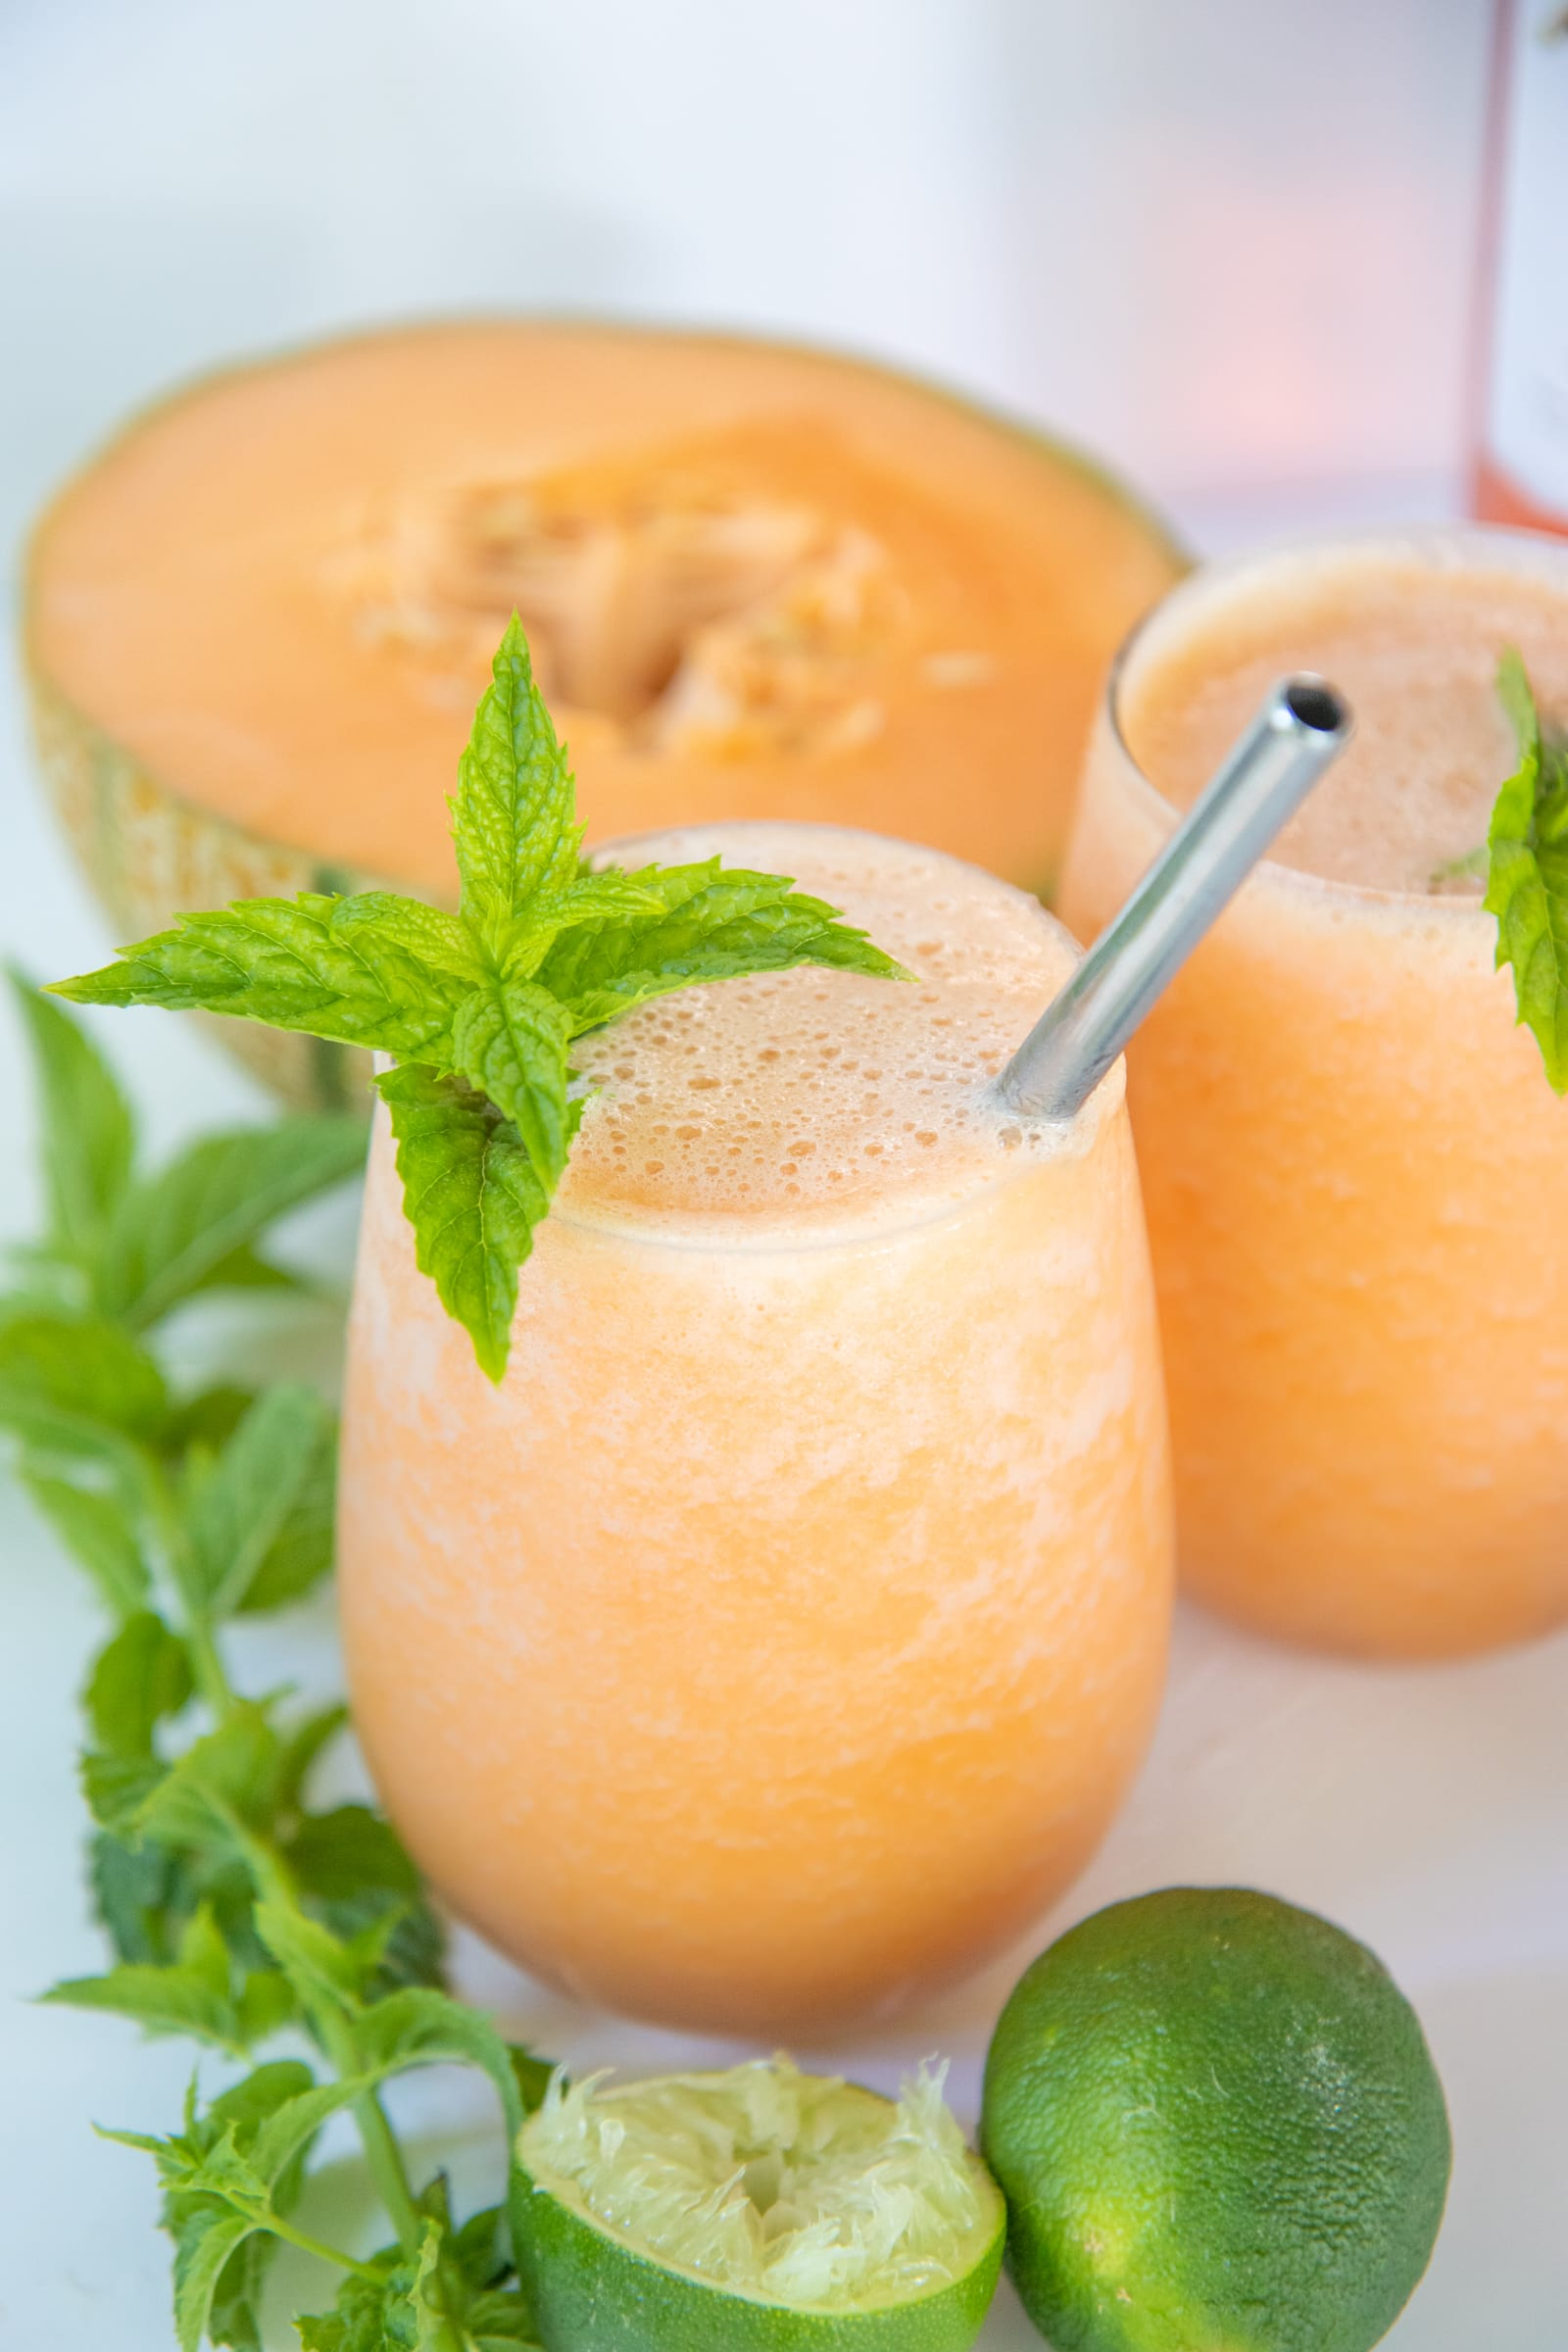 Two glasses with straws filled with cantaloupe frosé, garnished with mint. A halved cantaloupe and mint sprigs surround the glasses.